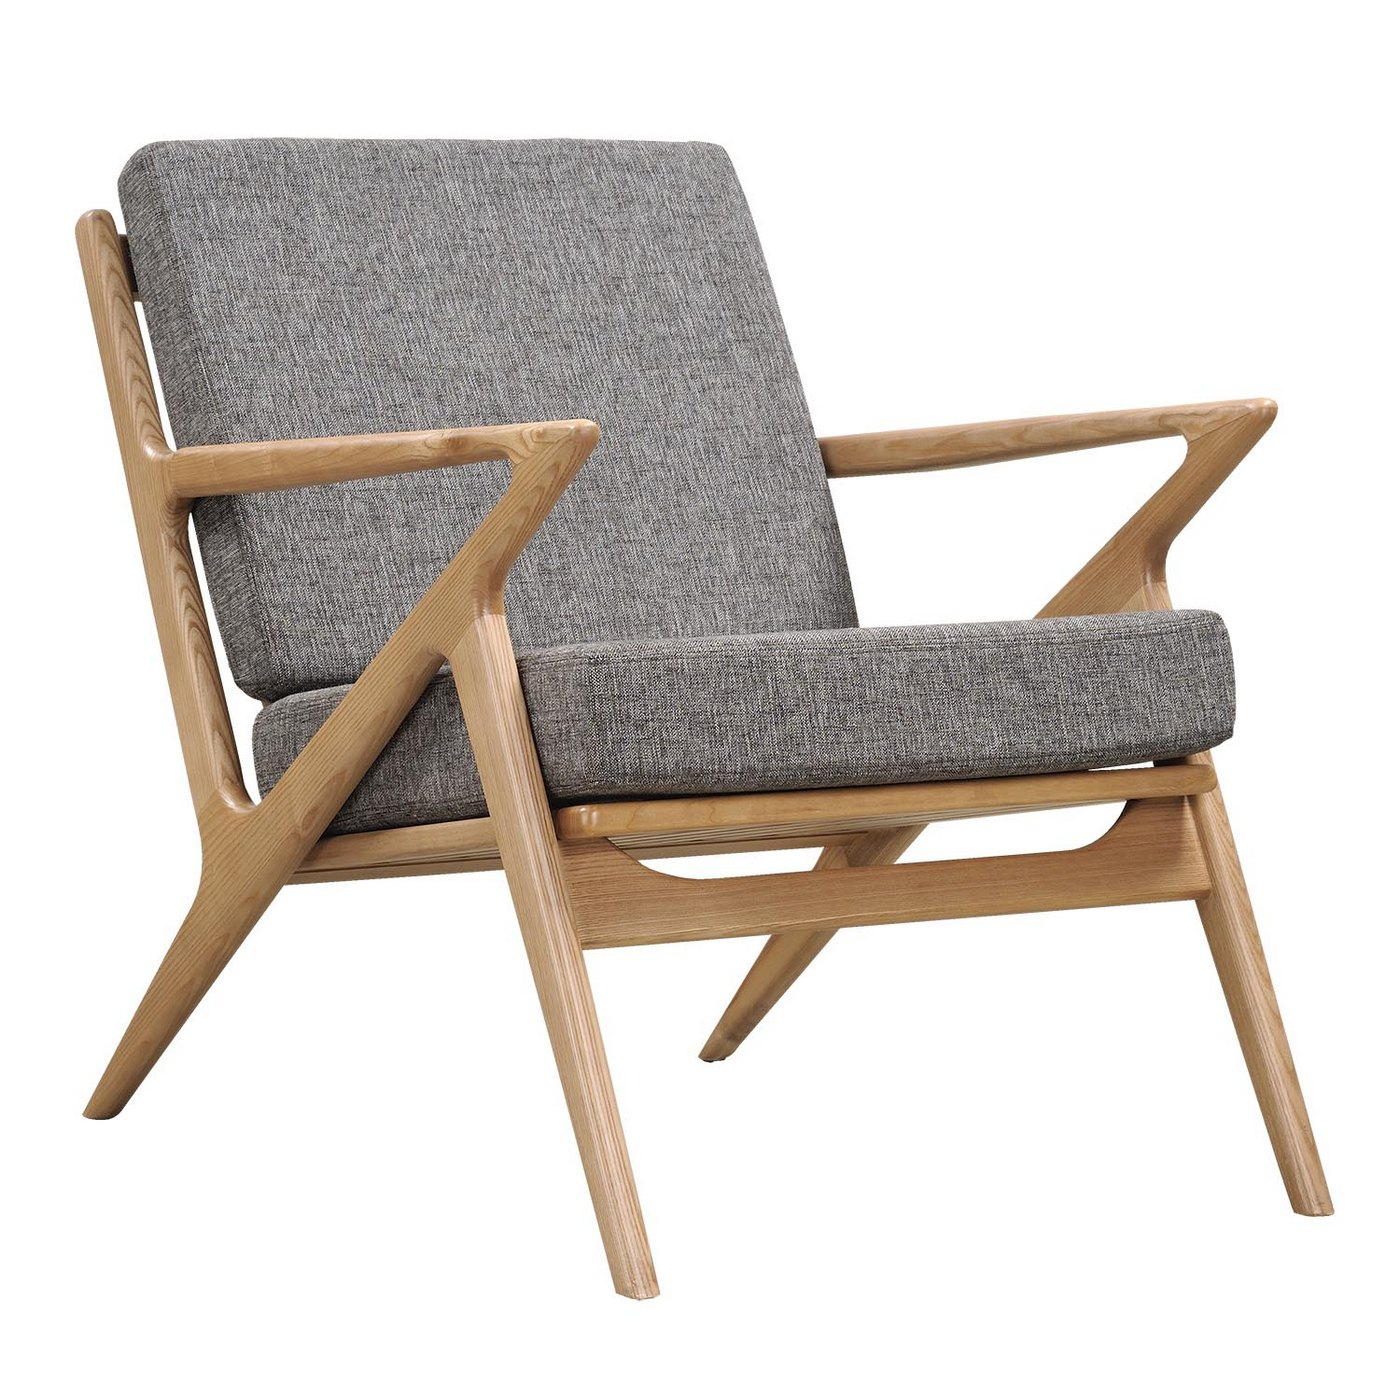 Mid Century Chair: Mid-Century Modern Wood Chair